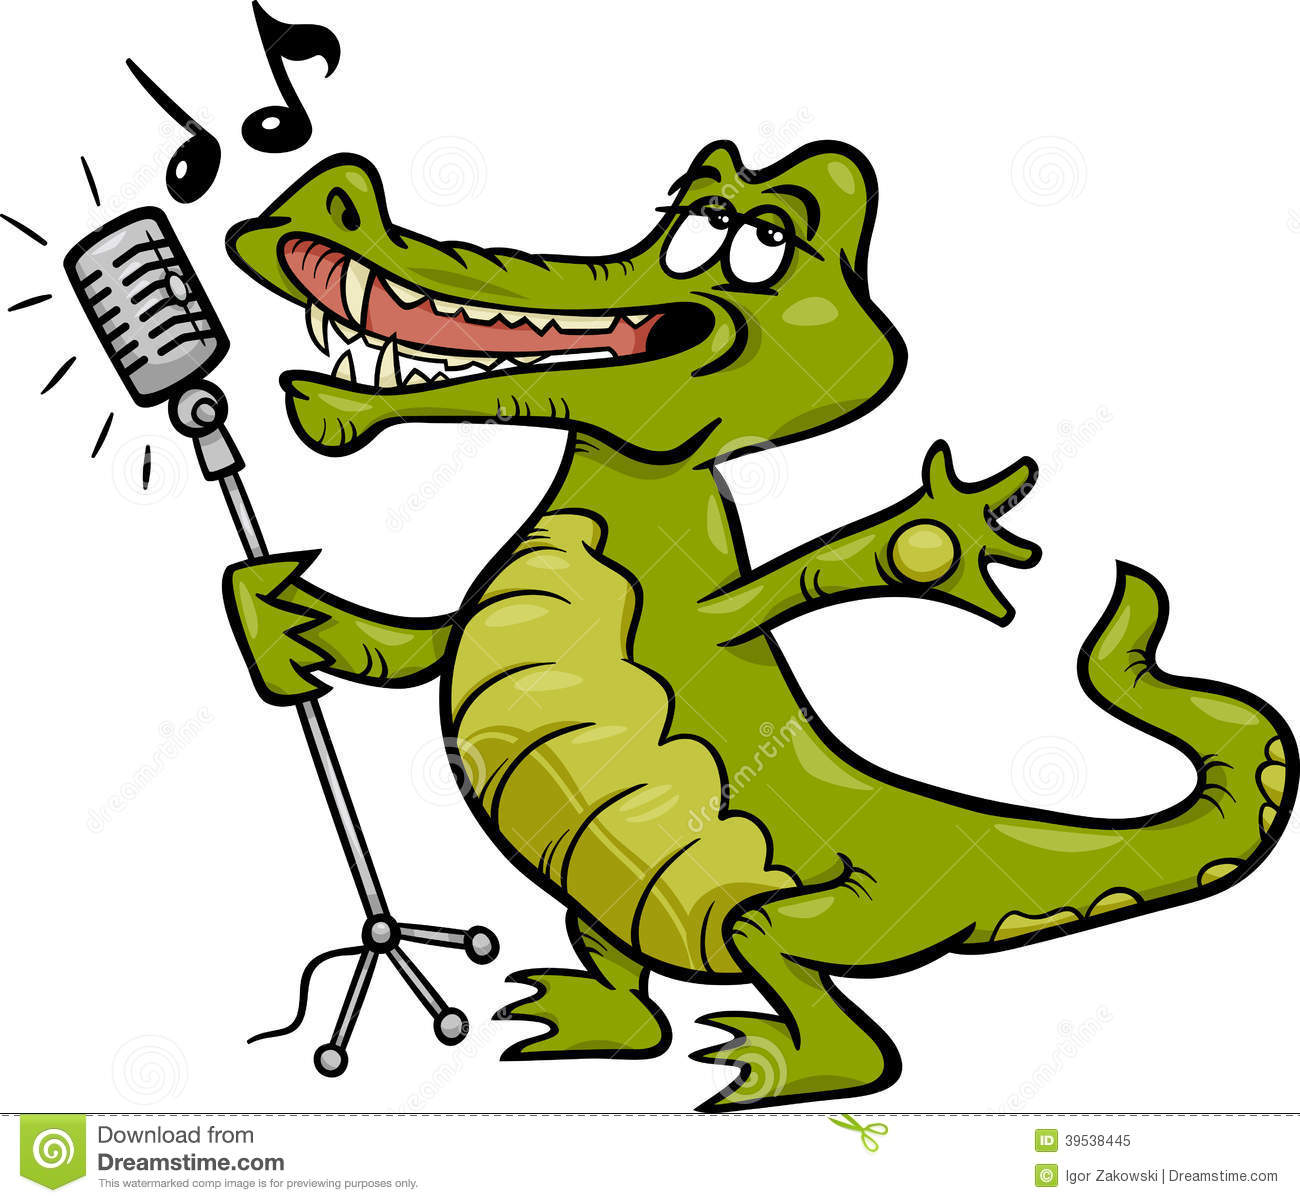 Singing Crocodile Cartoon Illustration Stock Vector - Image: 39538445